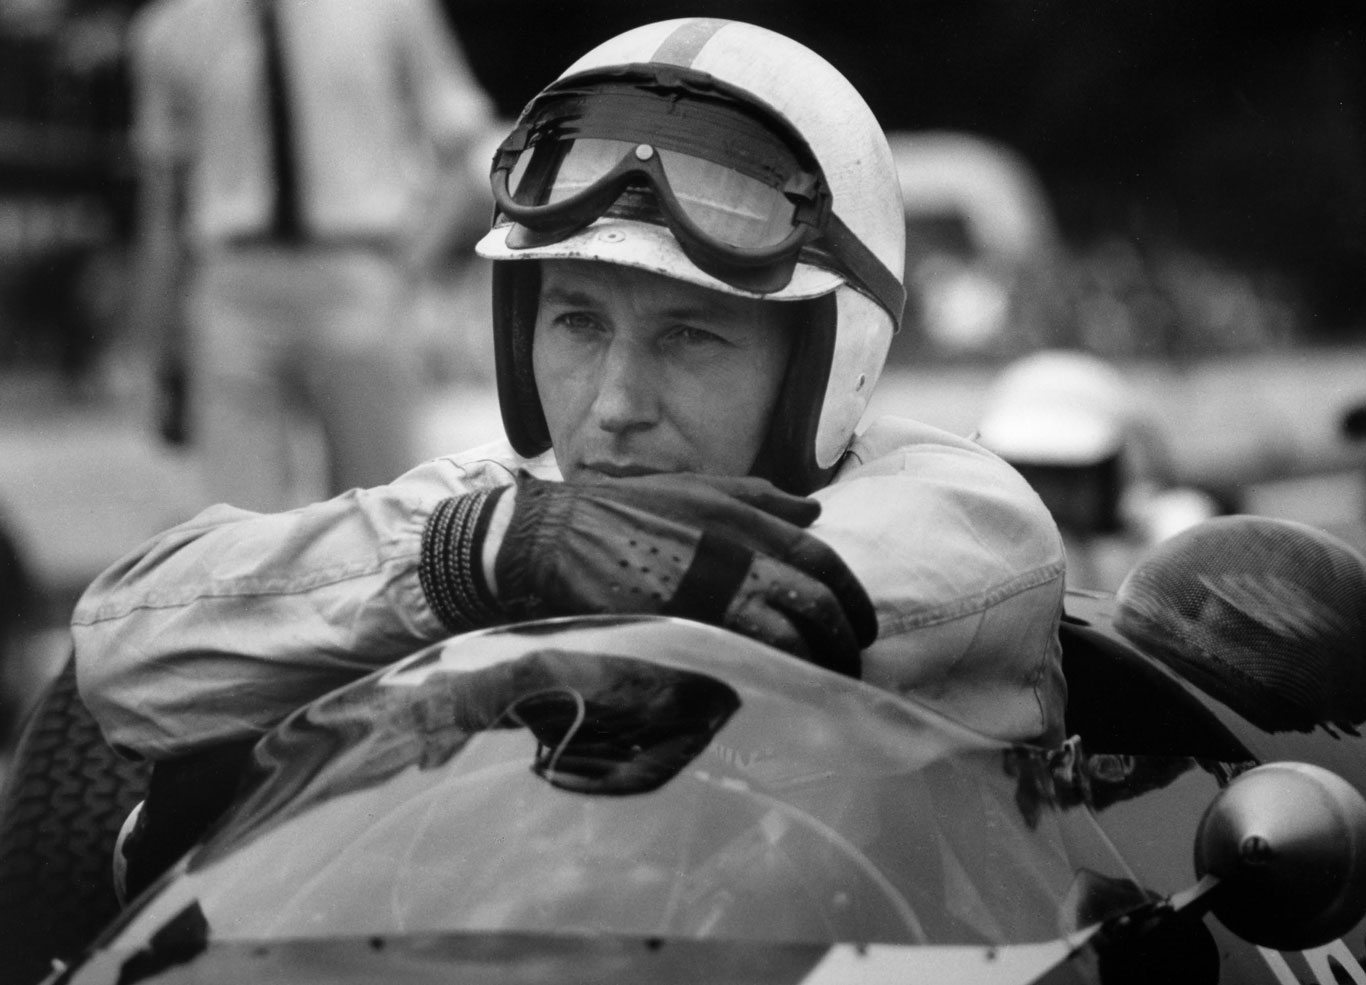 In Memory of John Surtees, 11 February 1934 – 10th March 2017